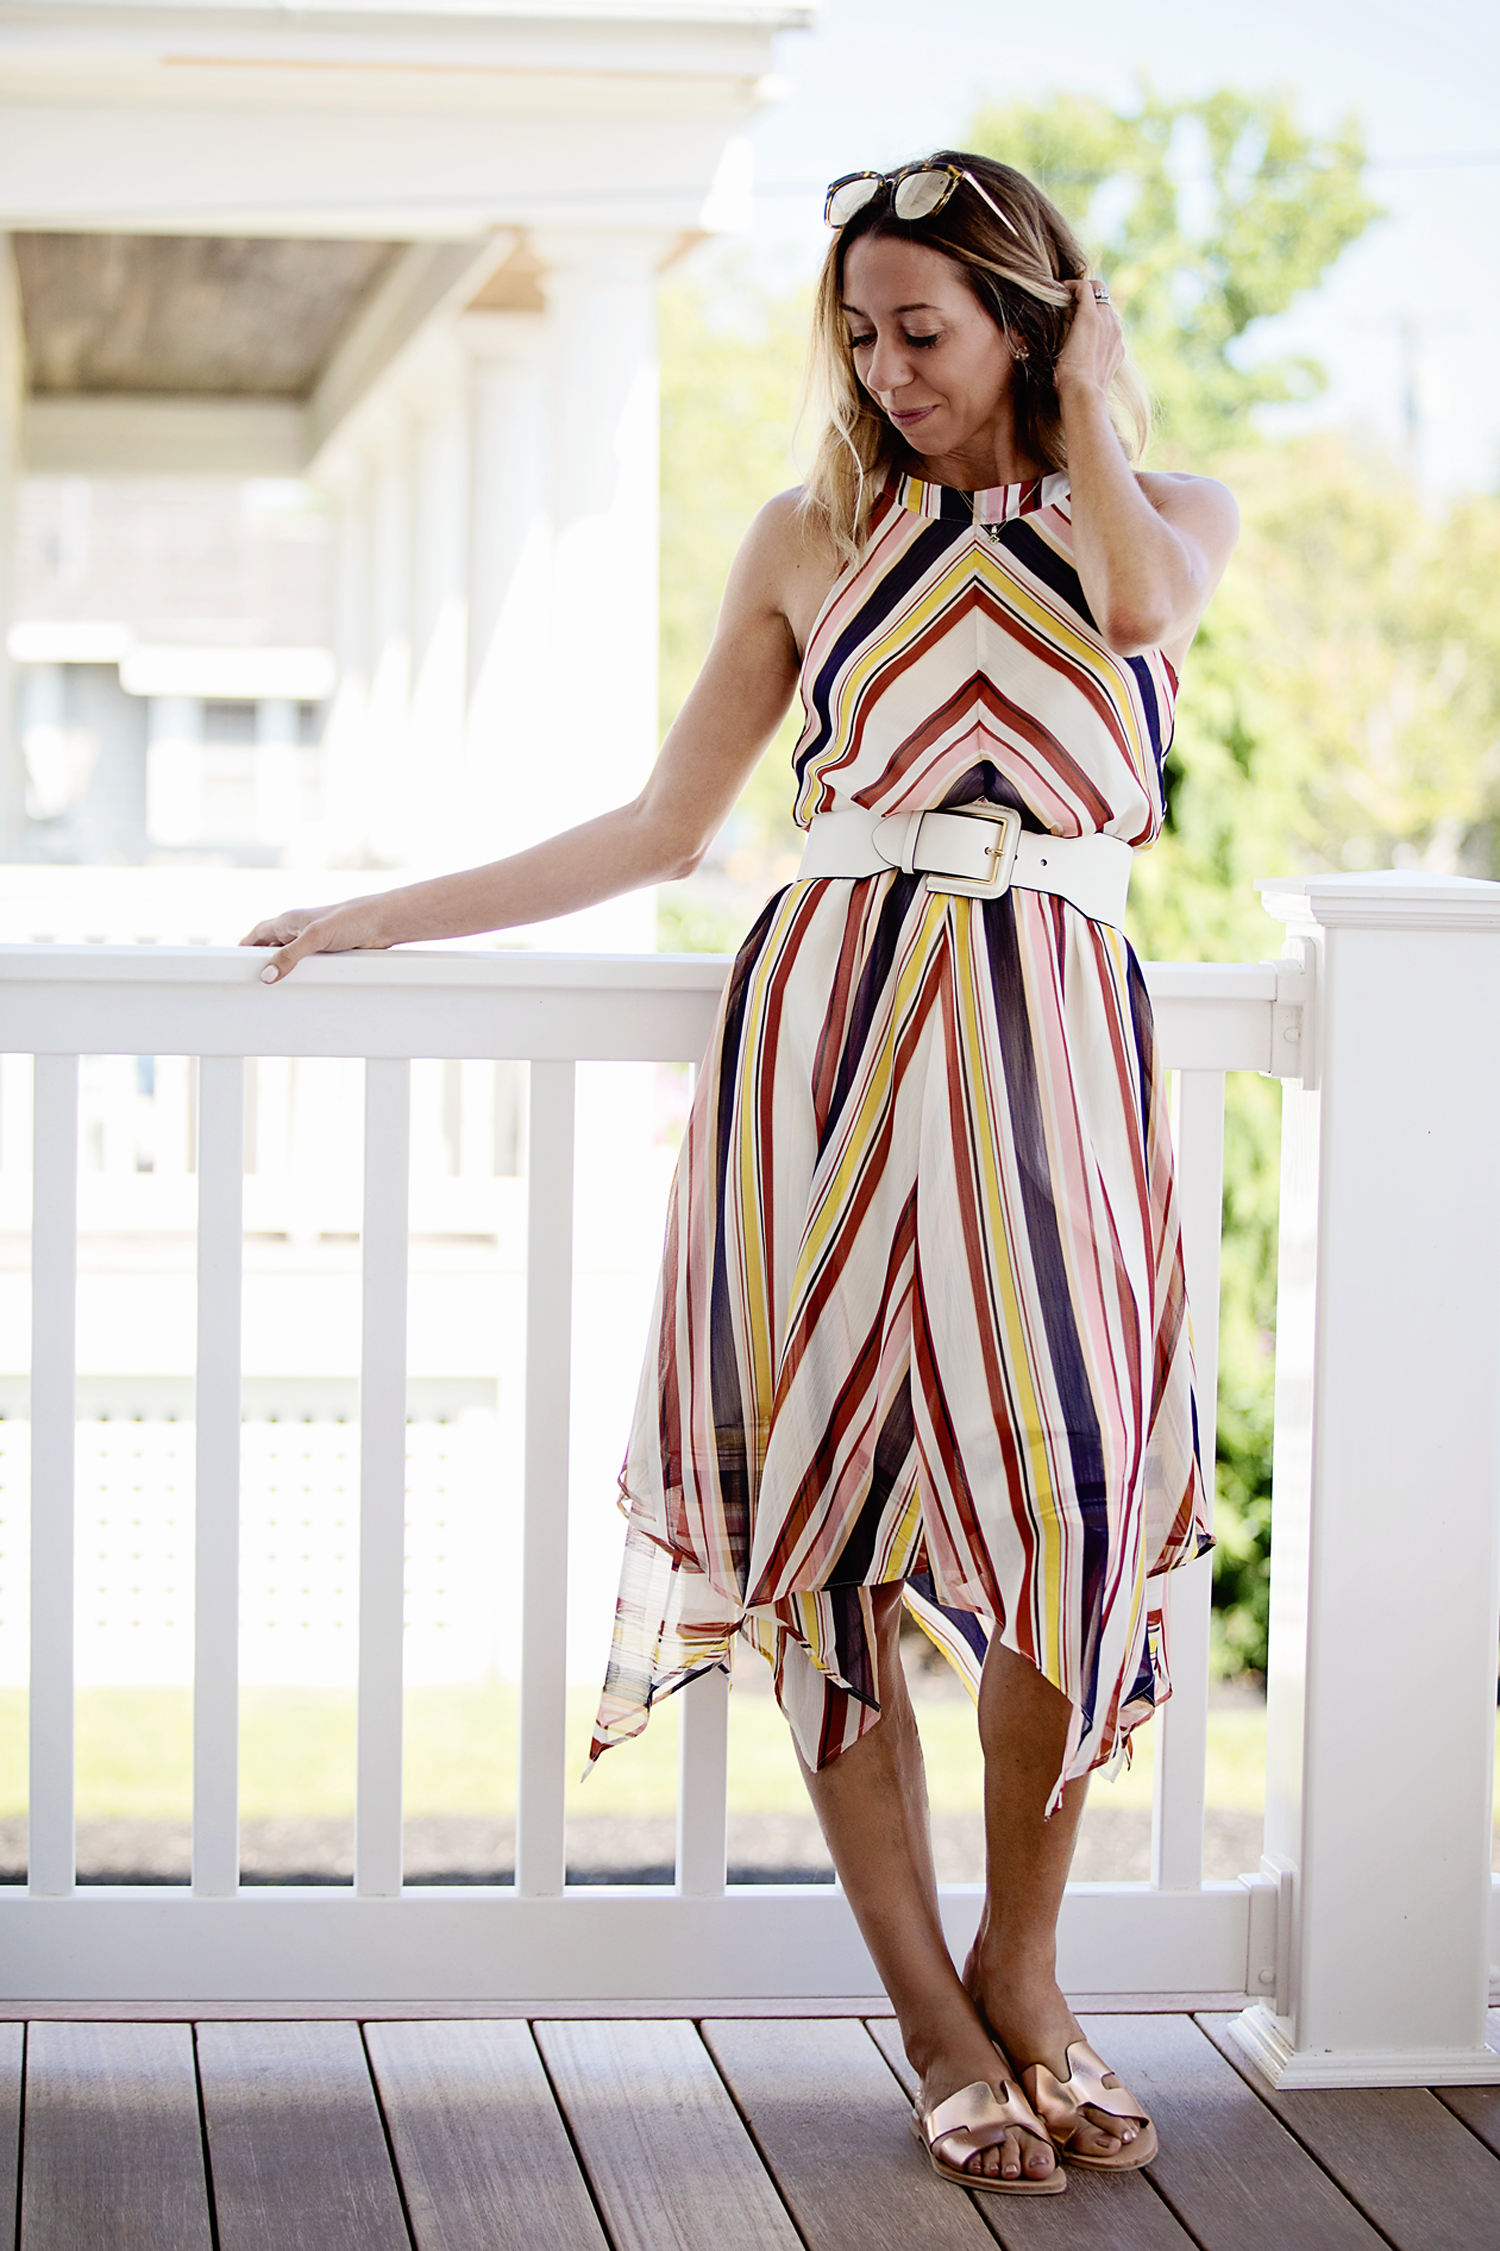 The Motherchic wearing striped sanctuary dress